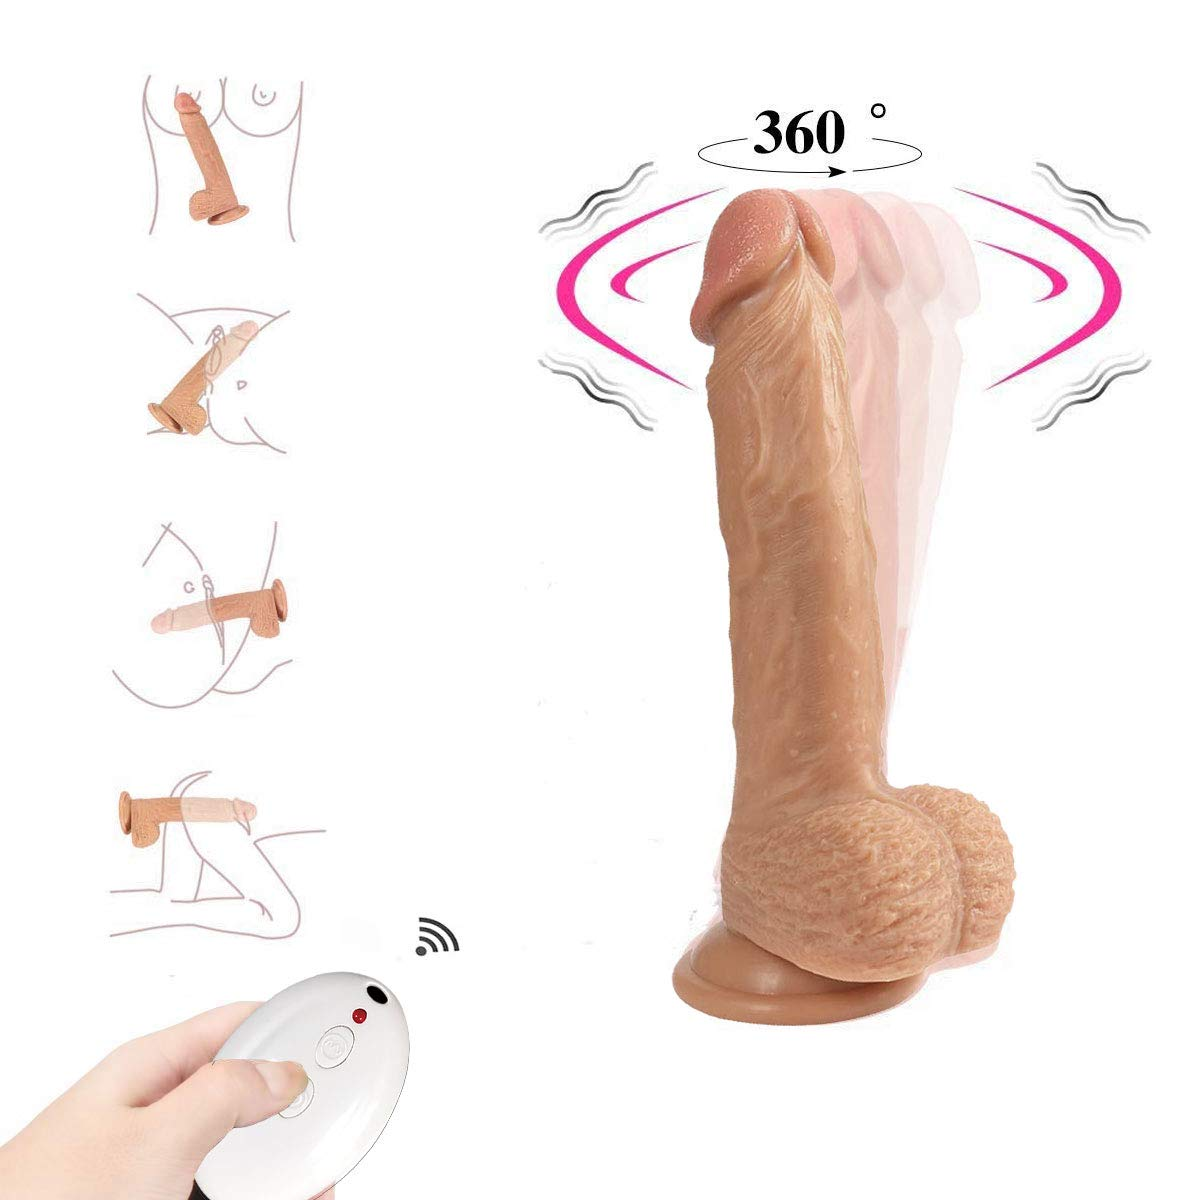 Rzoeox Realistic Silicone Dildo with Suction Cup - 8.5 Inch Lifelike Penis Wireless 10 Meter Remote Control 8 Speed Vibrator Vibrant Adult Sex Toy for Women Masturbation